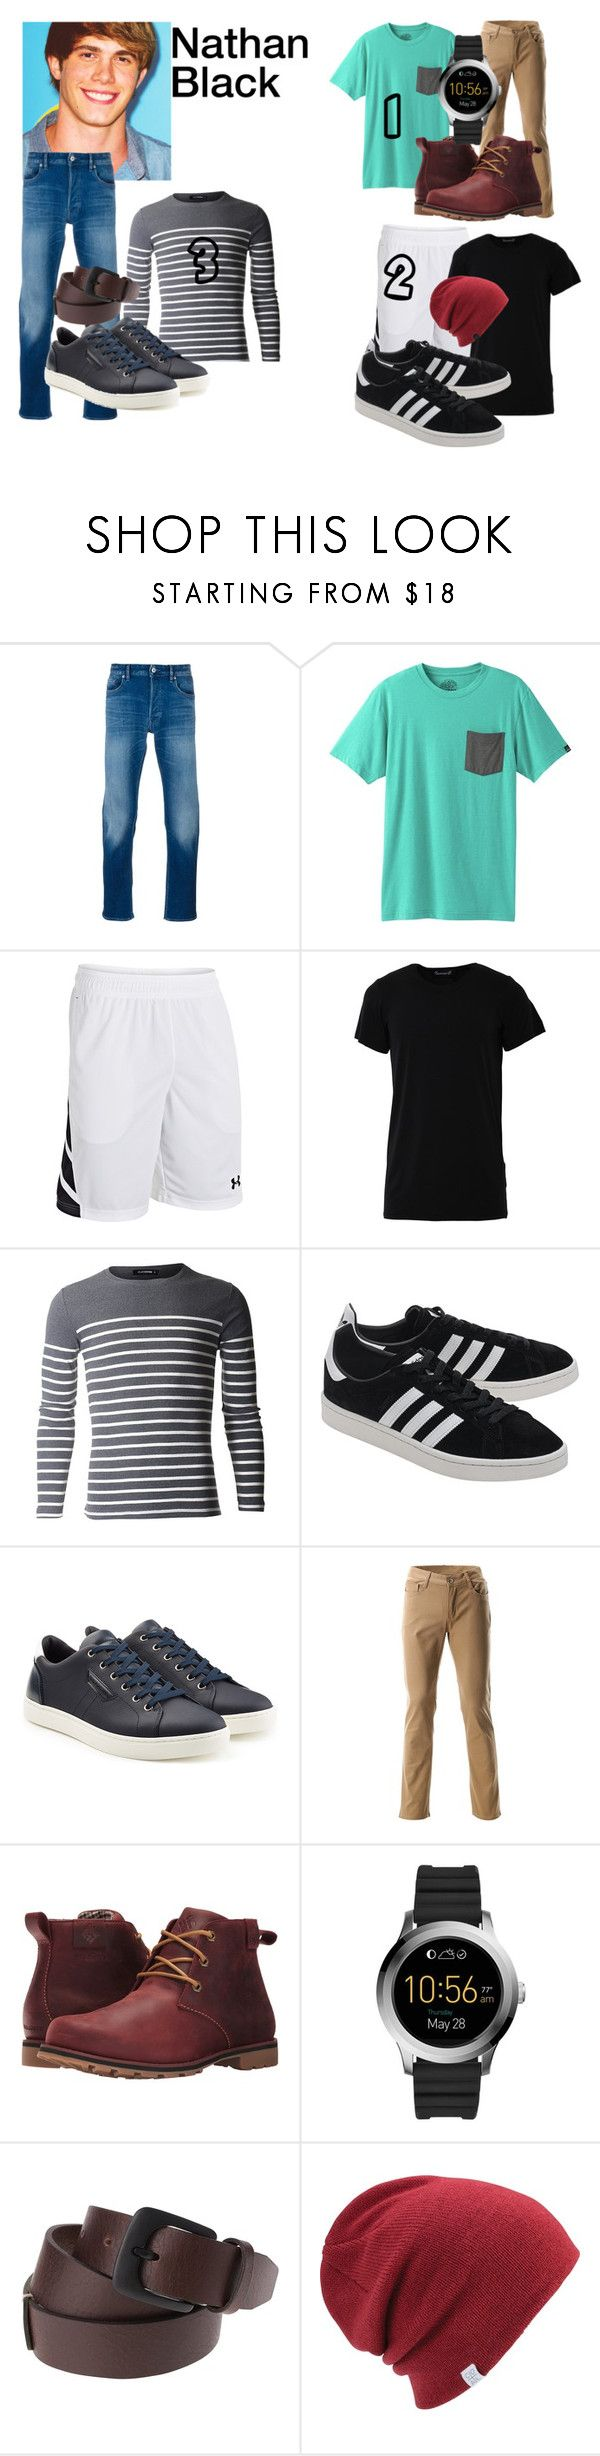 """""""Nathan Black"""" by styles-balor4eva on Polyvore featuring STONE ISLAND, prAna, Under Armour, Numero00, adidas Originals, Dolce&Gabbana, Columbia, FOSSIL, Coal and men's fashion"""